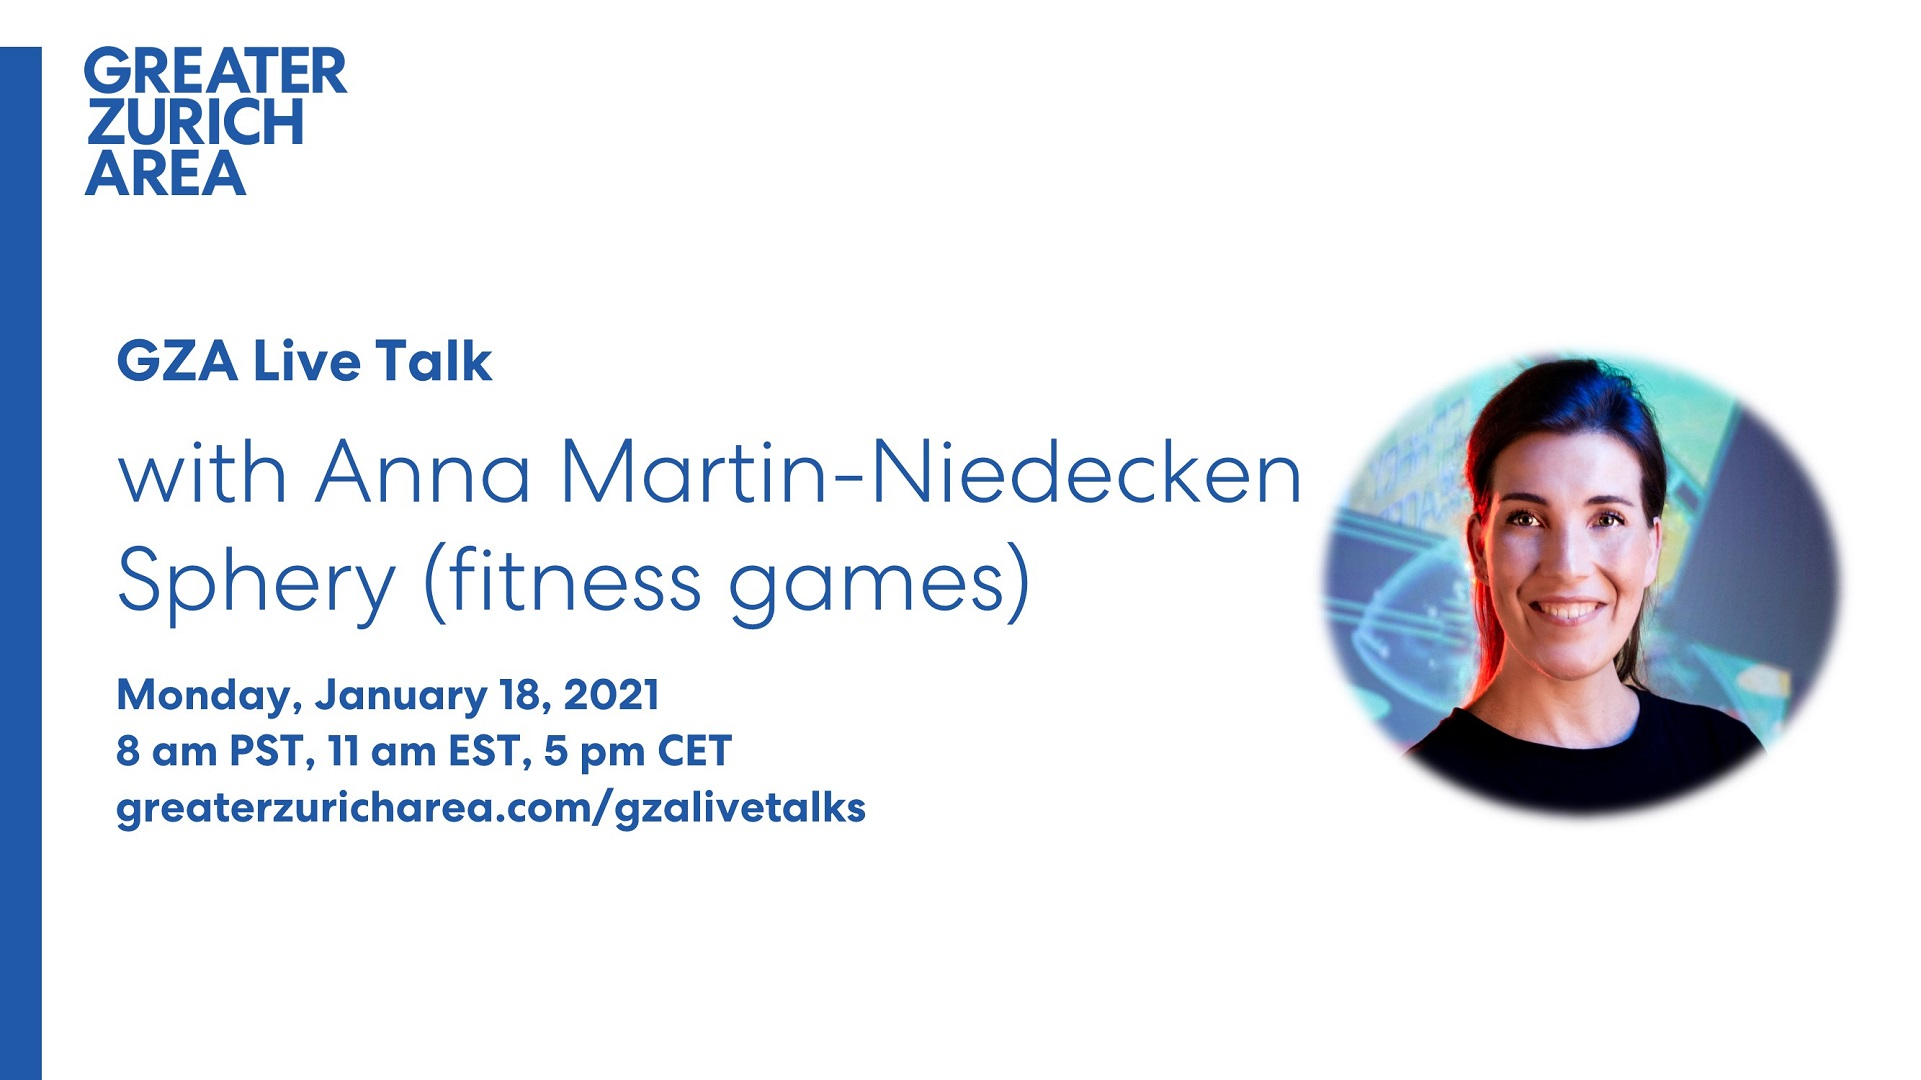 Join the GZA Live Talk with Anna Martin-Niedecken, Sphery (fitness games)